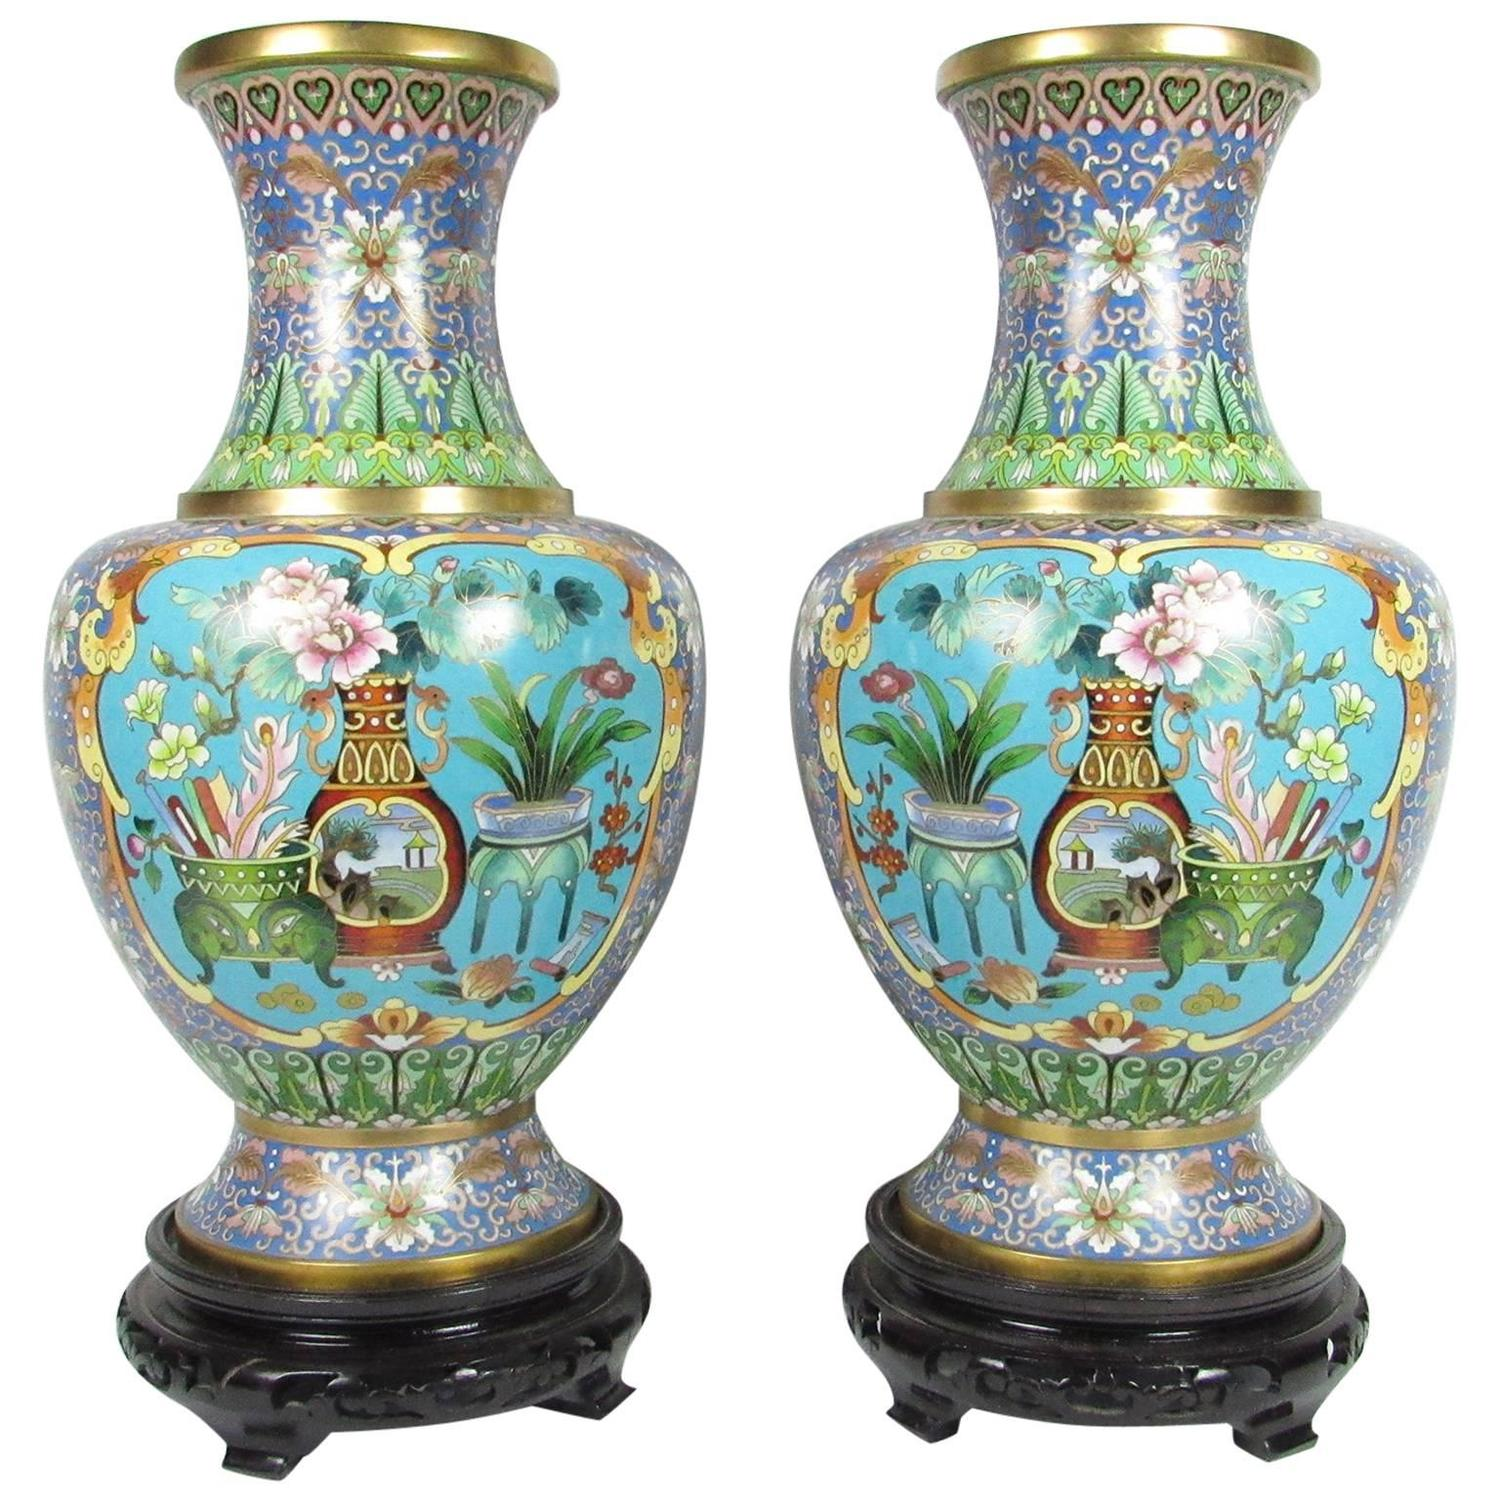 Pair of mid 20th century chinese cloisonn vases for sale at 1stdibs reviewsmspy